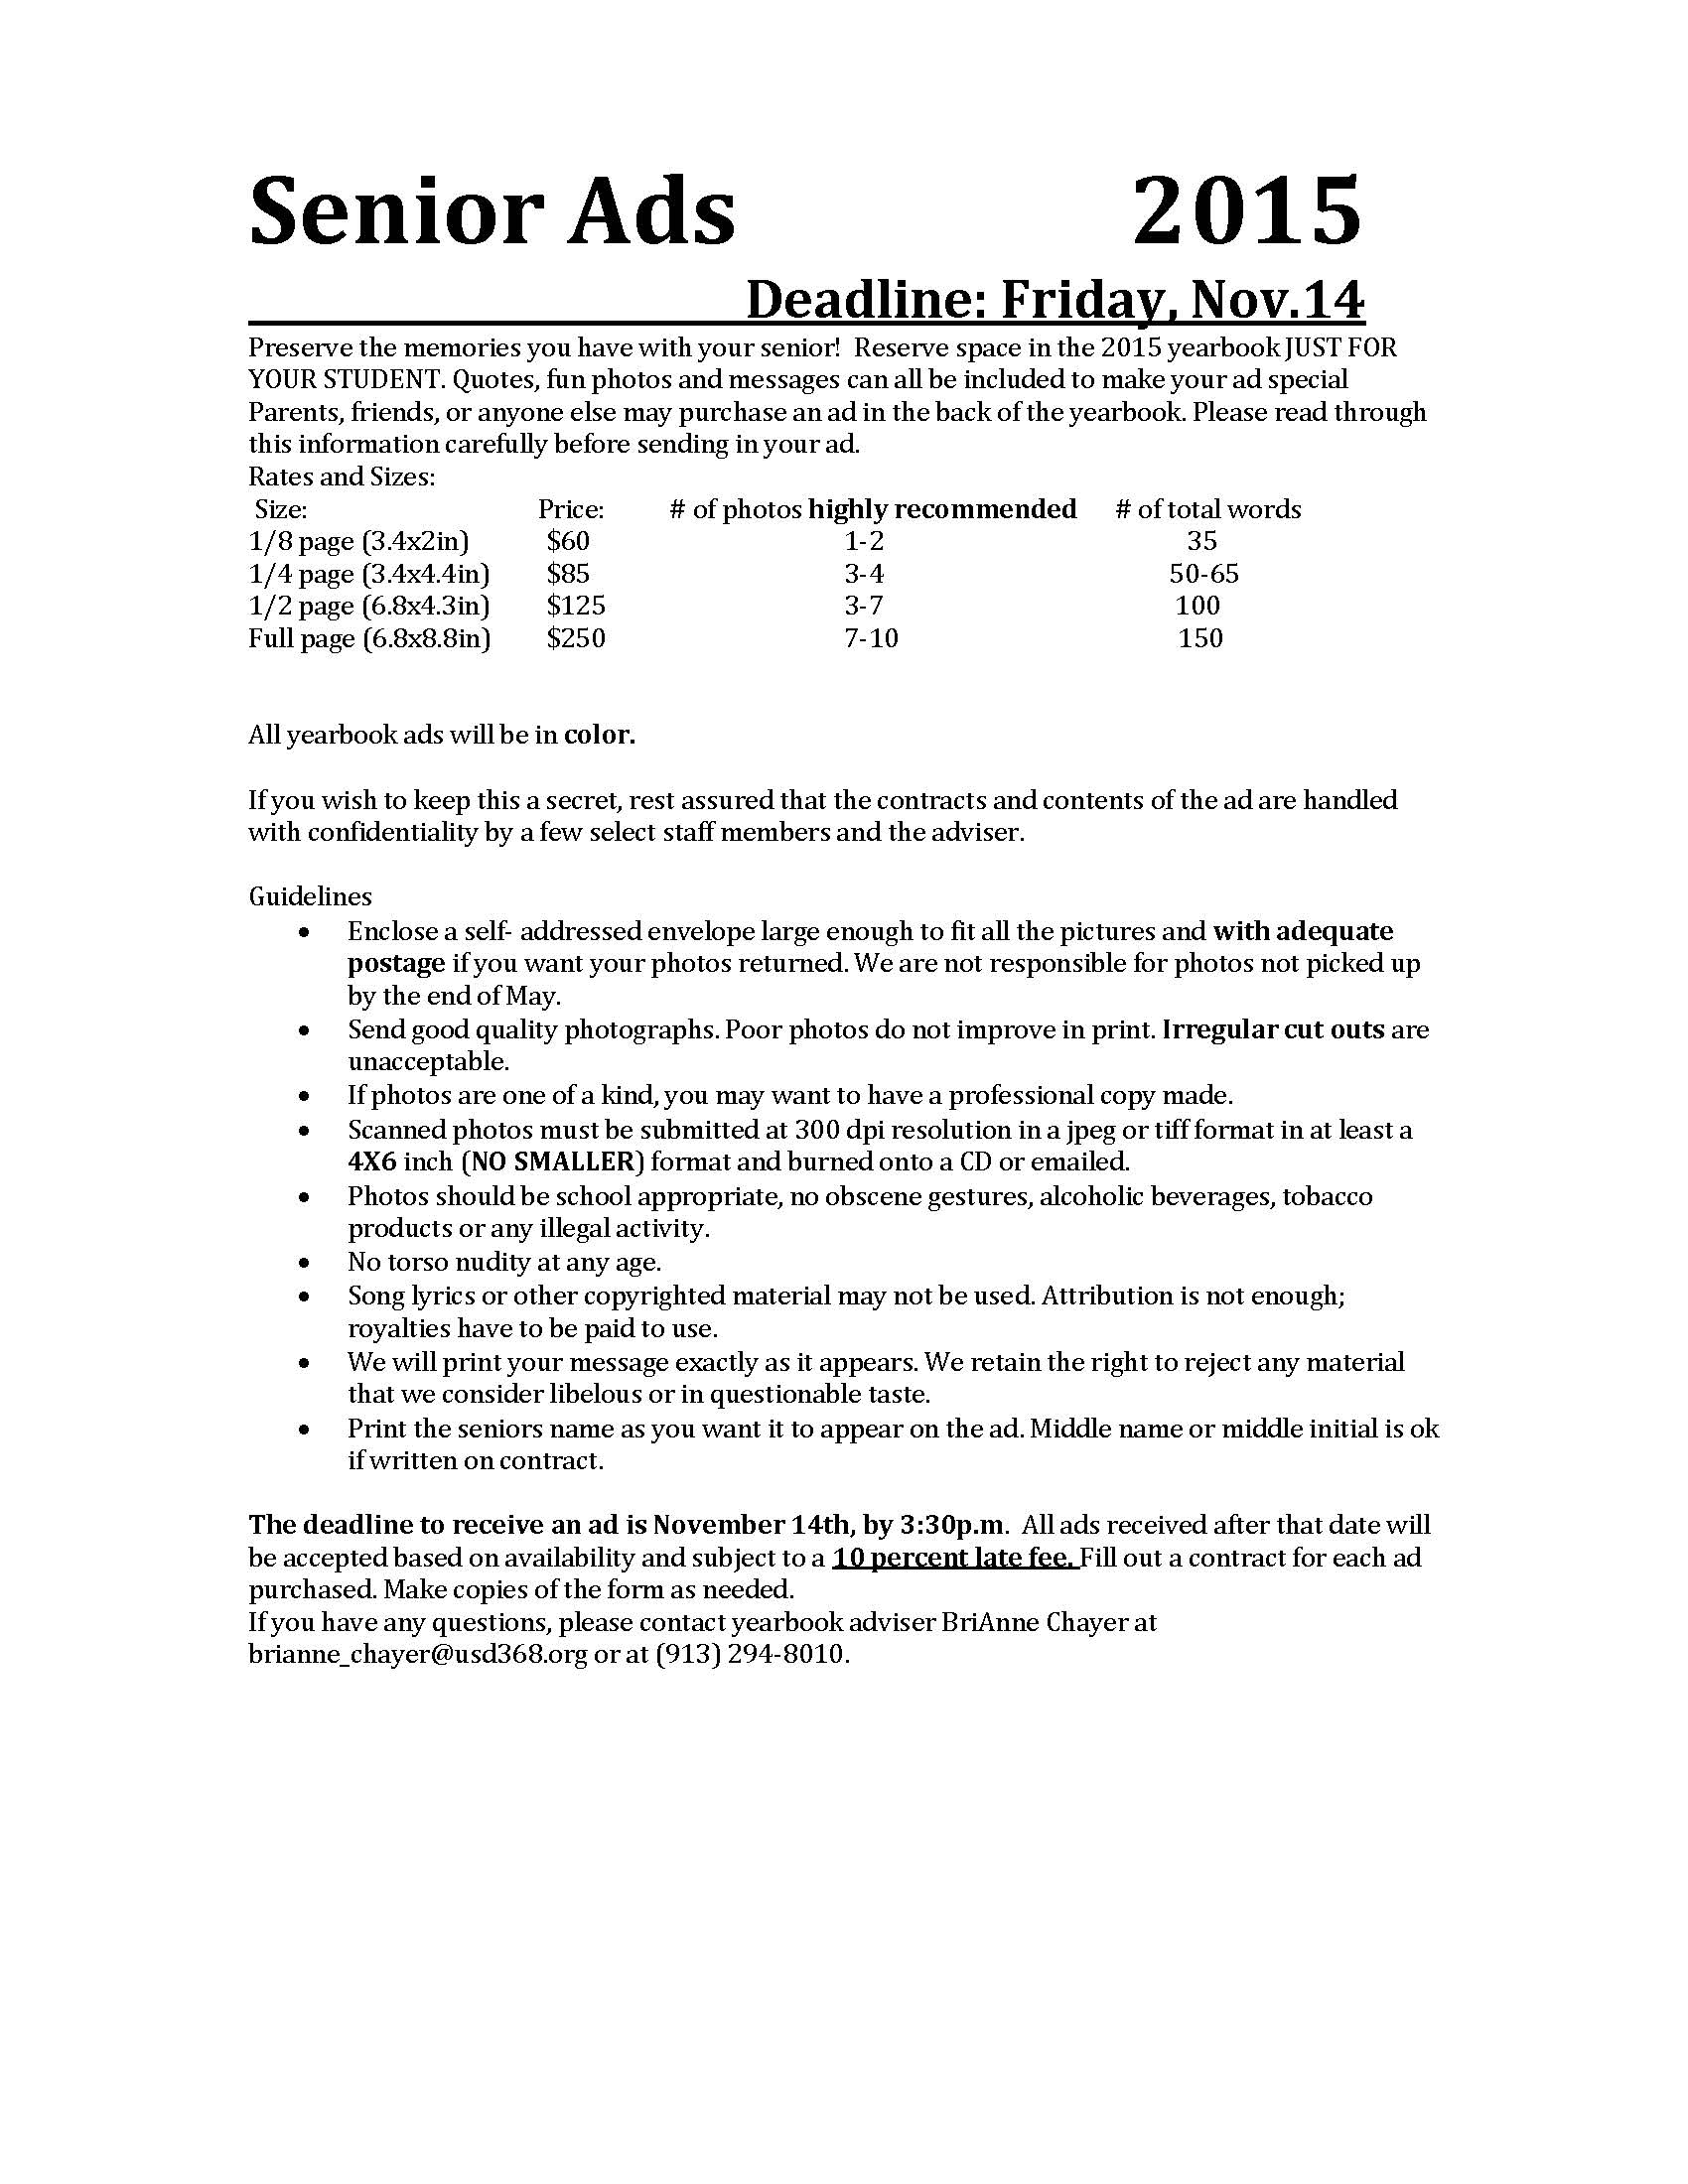 Senior Ads 2015memo and contract_Page_1